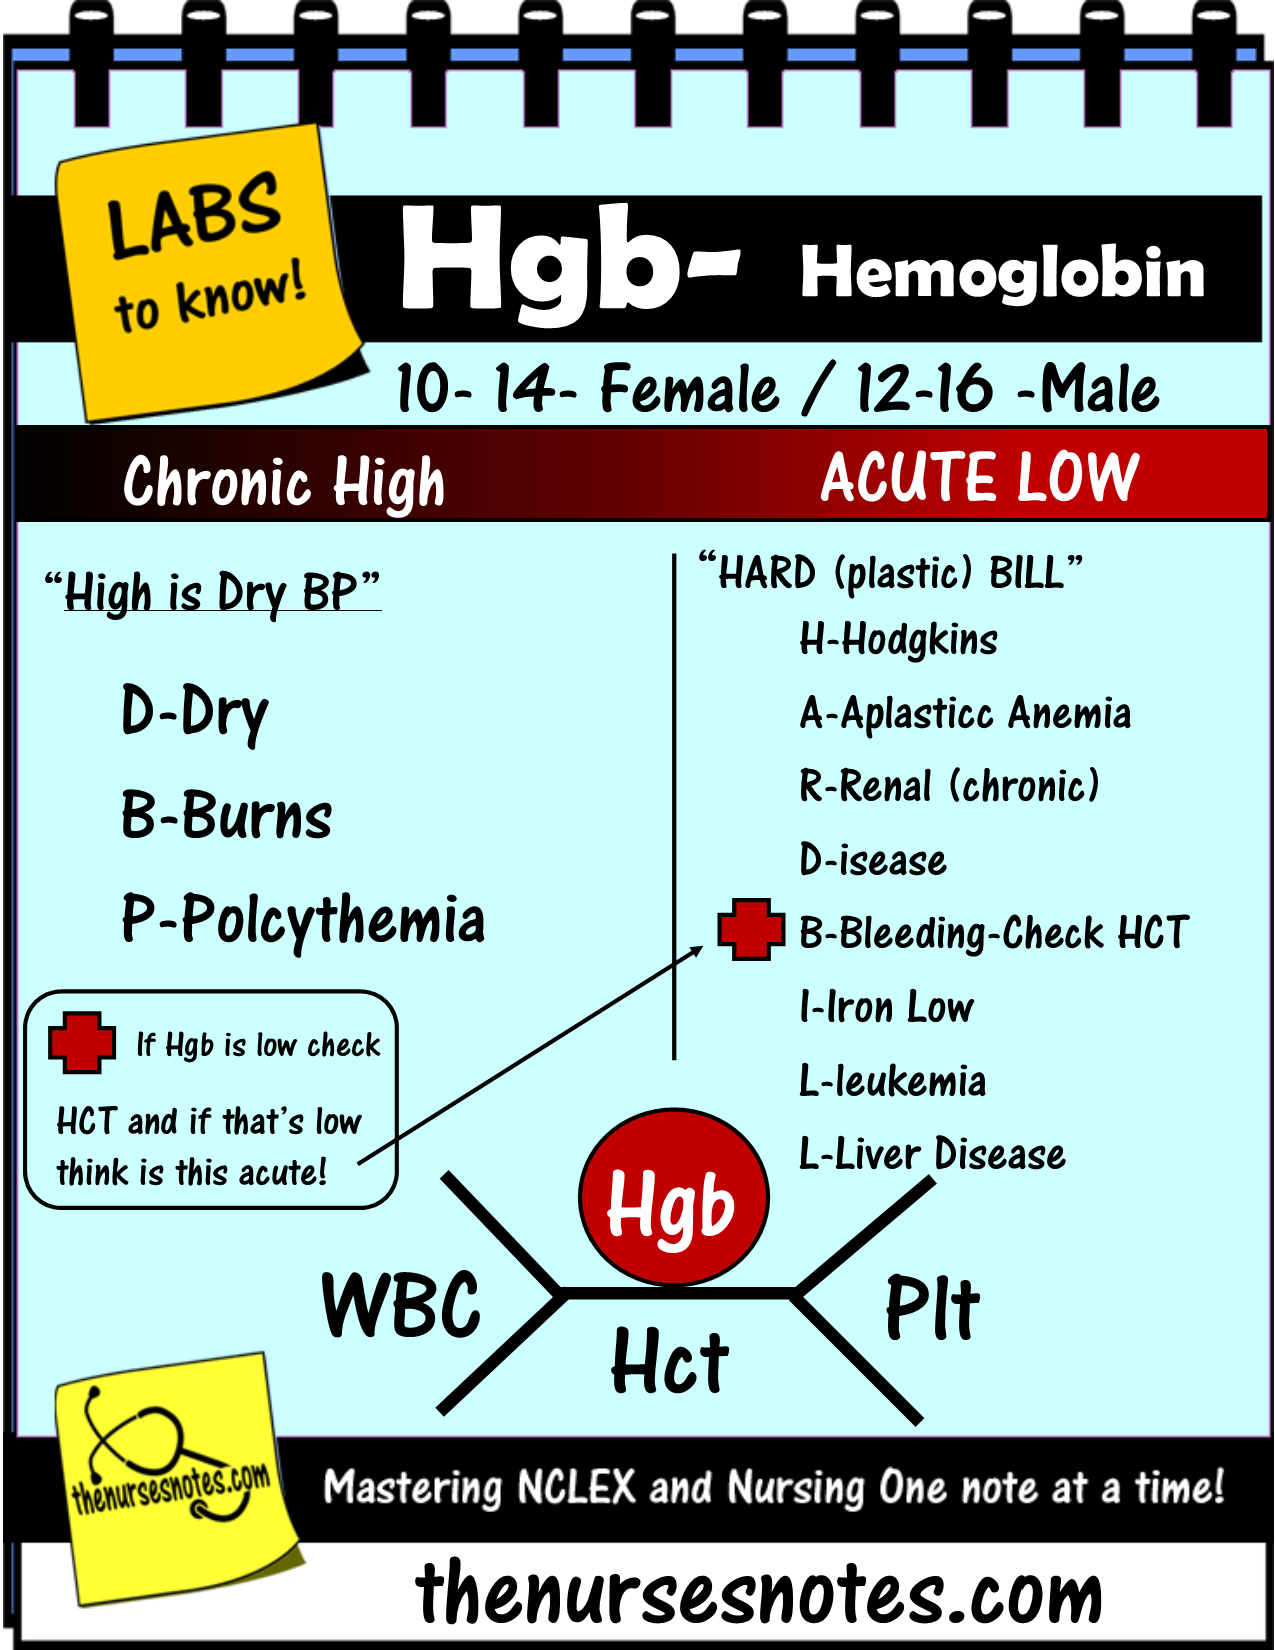 cbc complete blood count hematocrit wbc platelets hgb hct bmp chem7 fishbone diagram explaining labs from the blood book theses are the labs you should  [ 1275 x 1650 Pixel ]